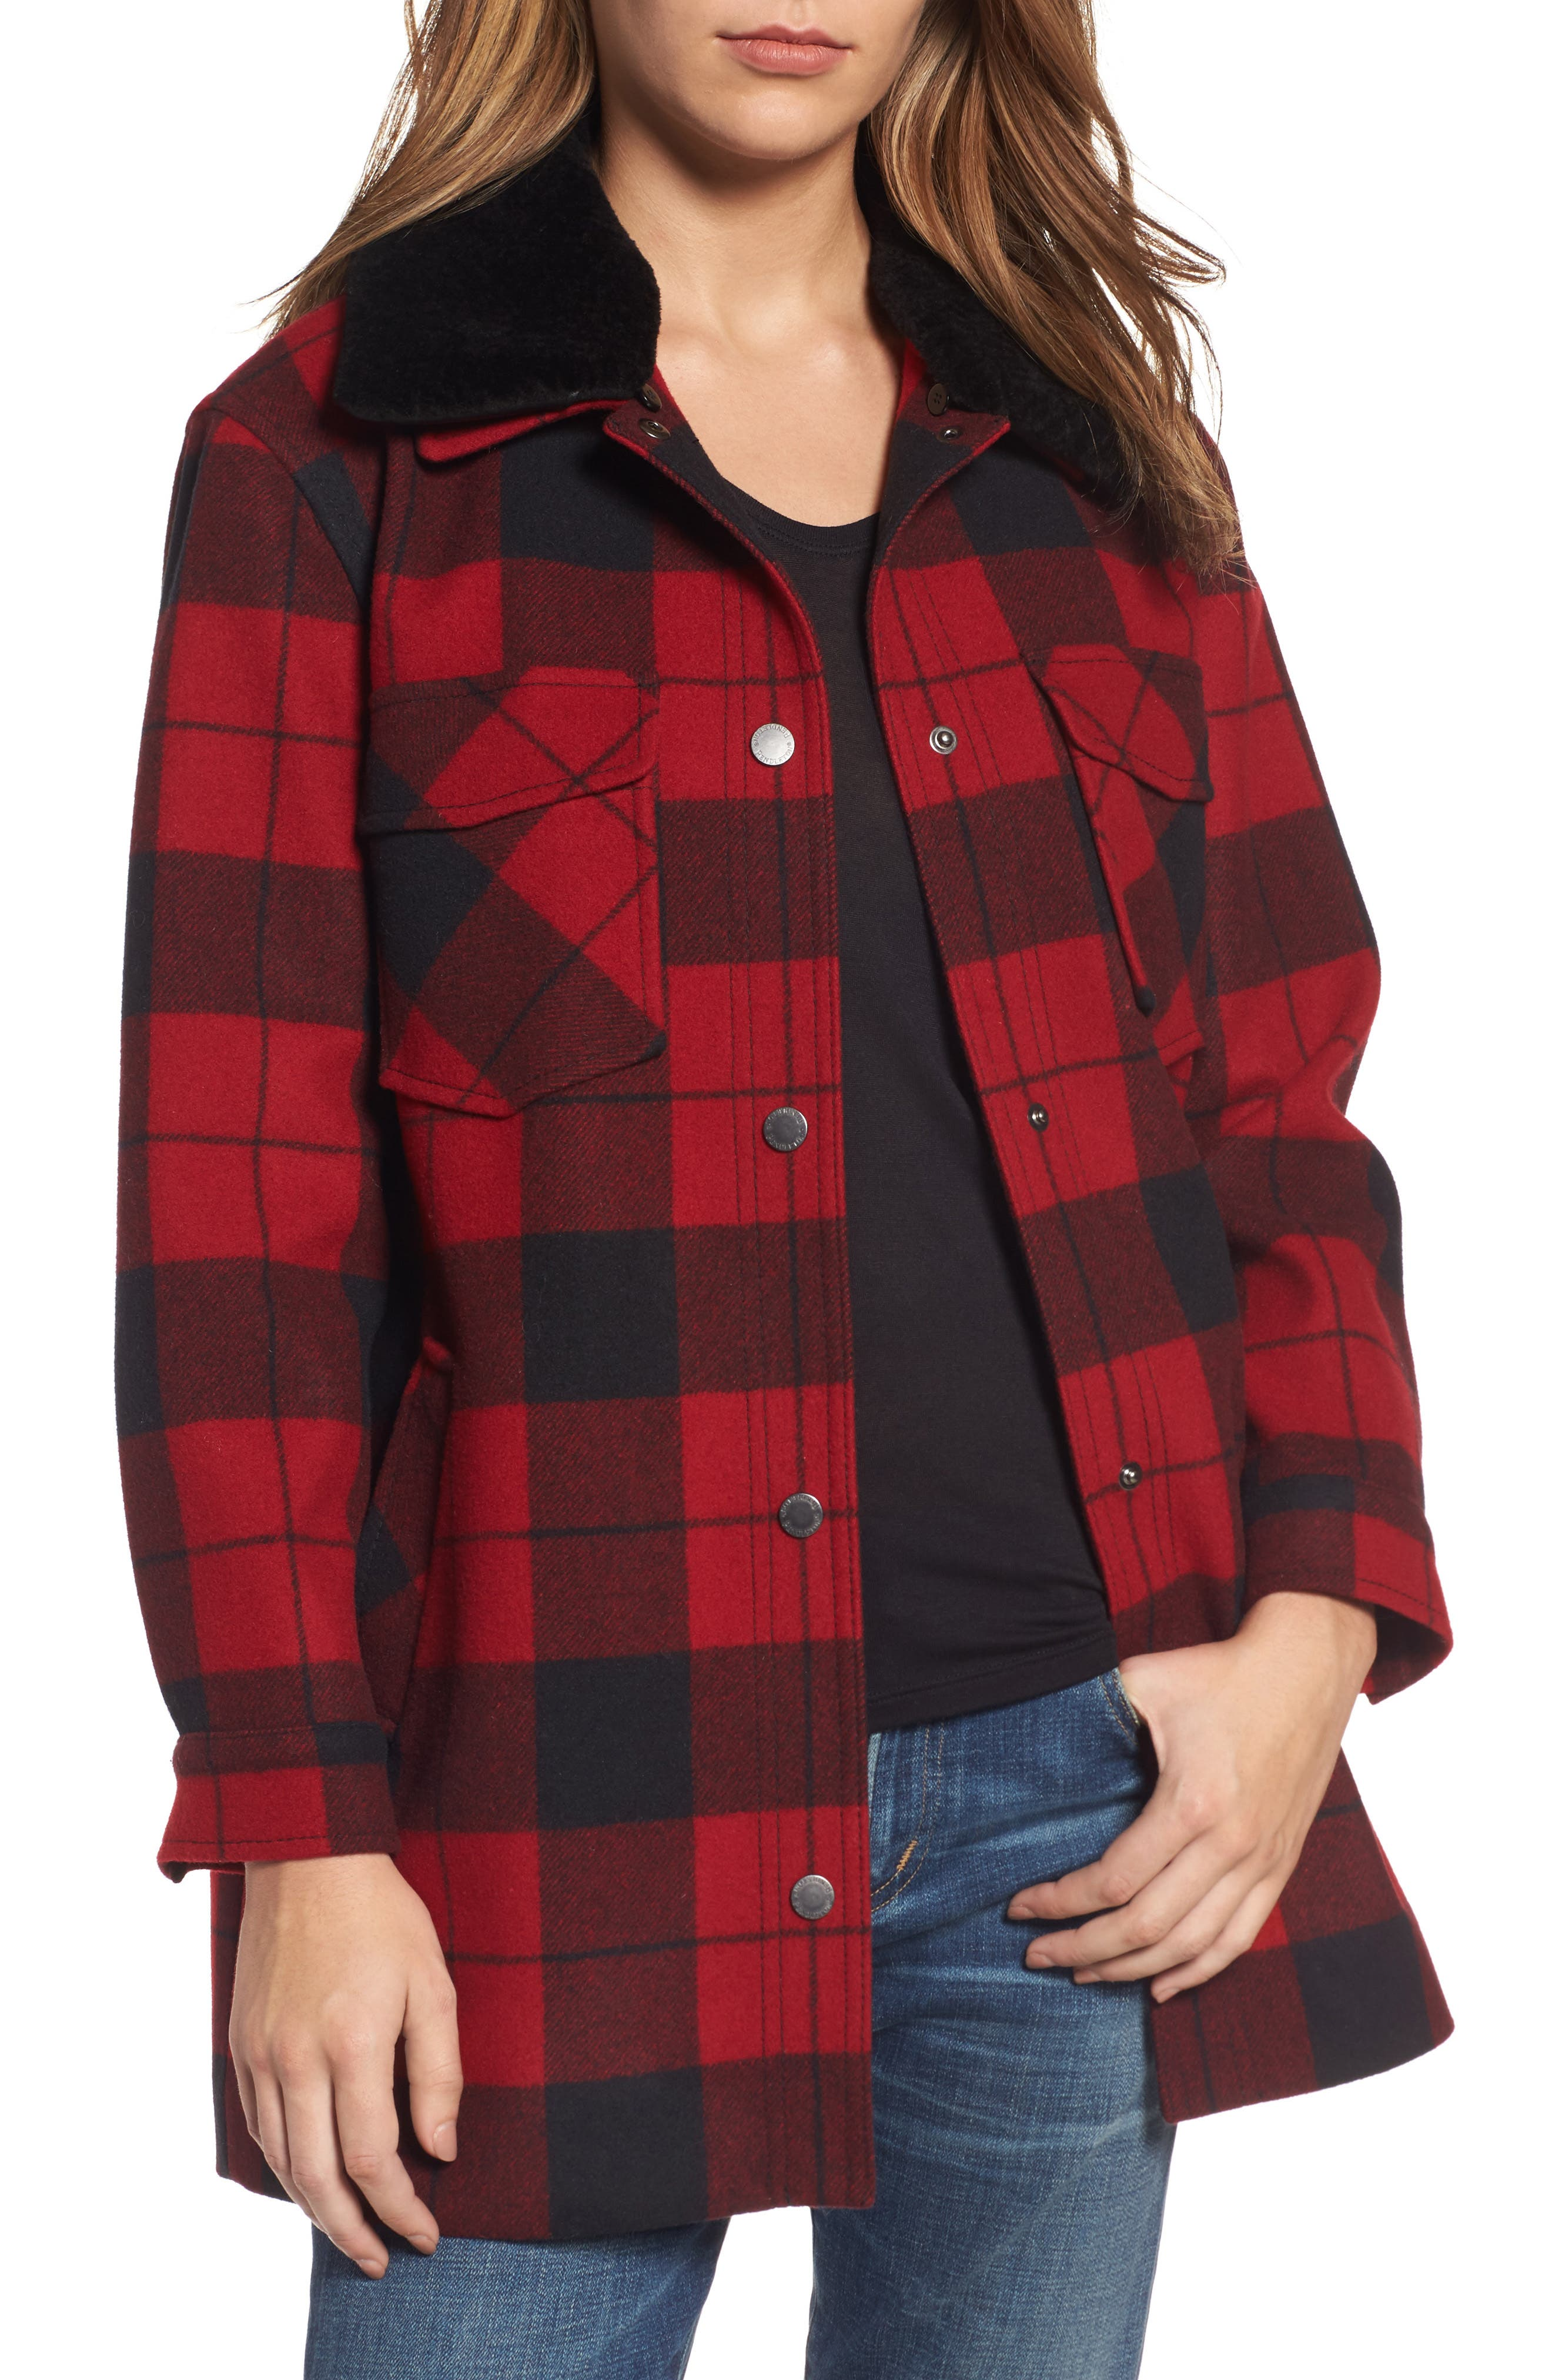 Pendleton Cheyenne Plaid Wool Blend Coat with Faux Shearling Collar